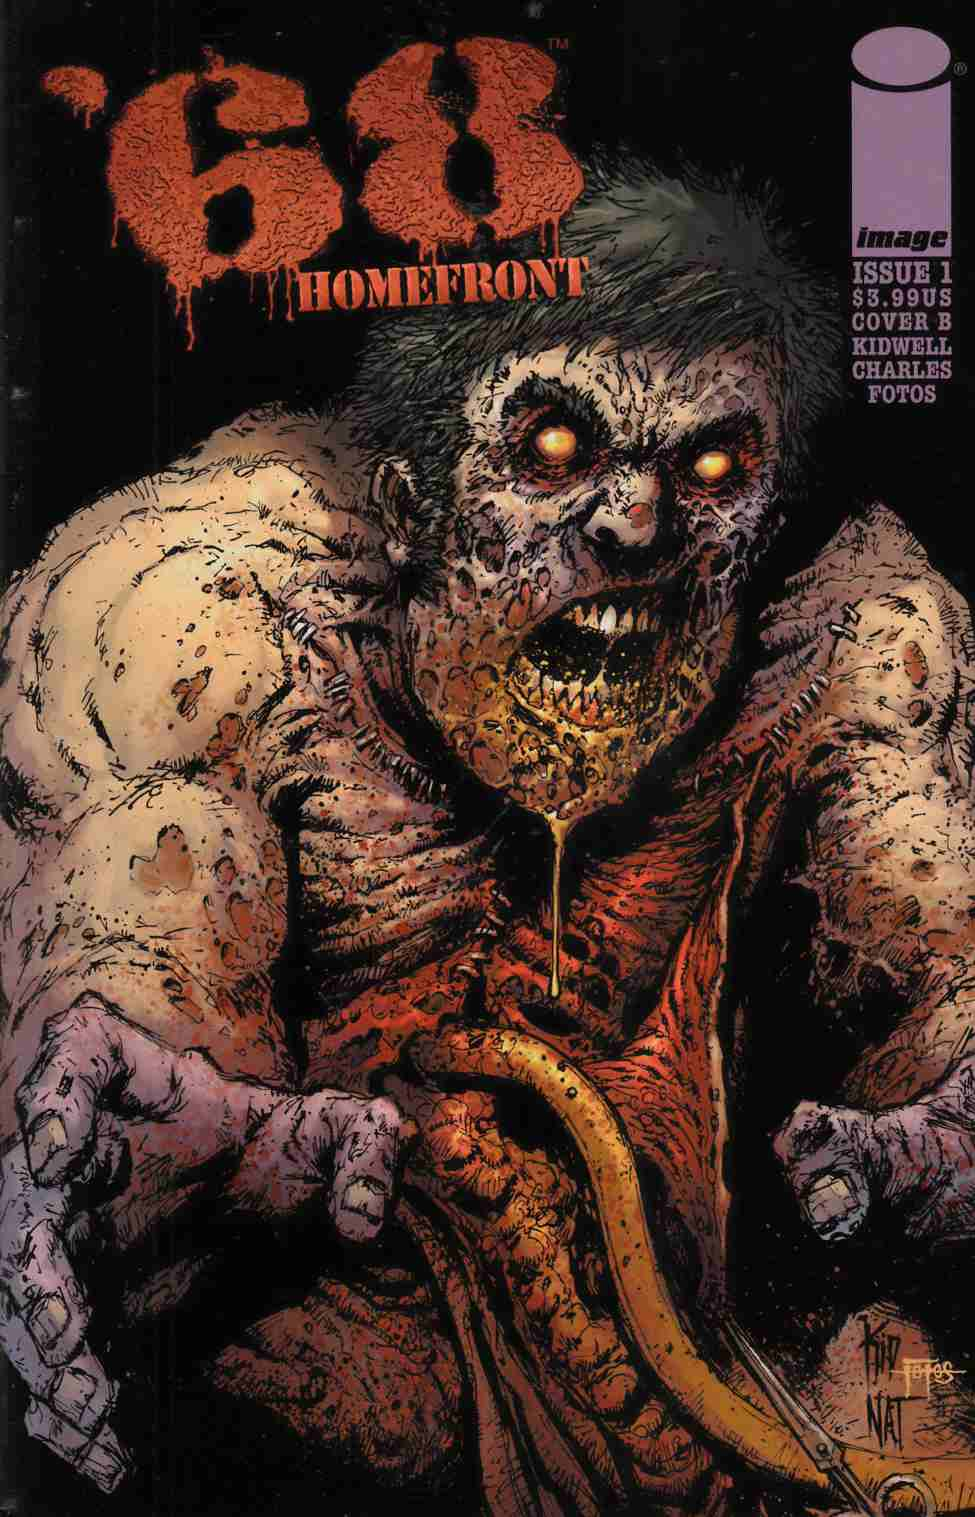 68 Homefront #1 Cover B- Kidwell & Jones & Fotos [Comic] THUMBNAIL